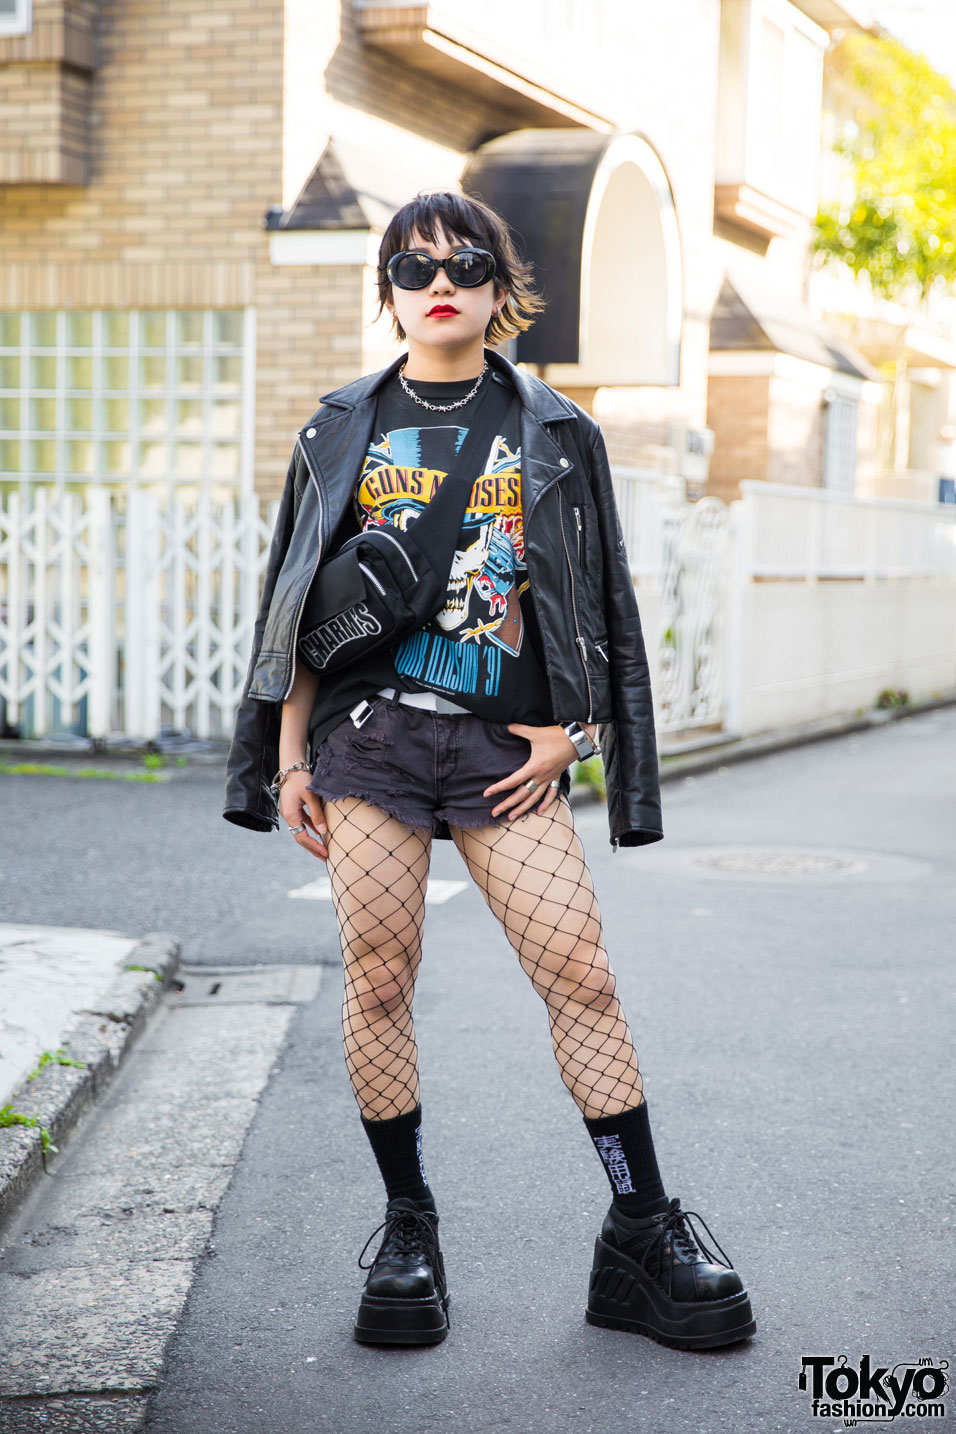 Harajuku Girl In Guns N Roses Tee Denim Shorts Fishnets